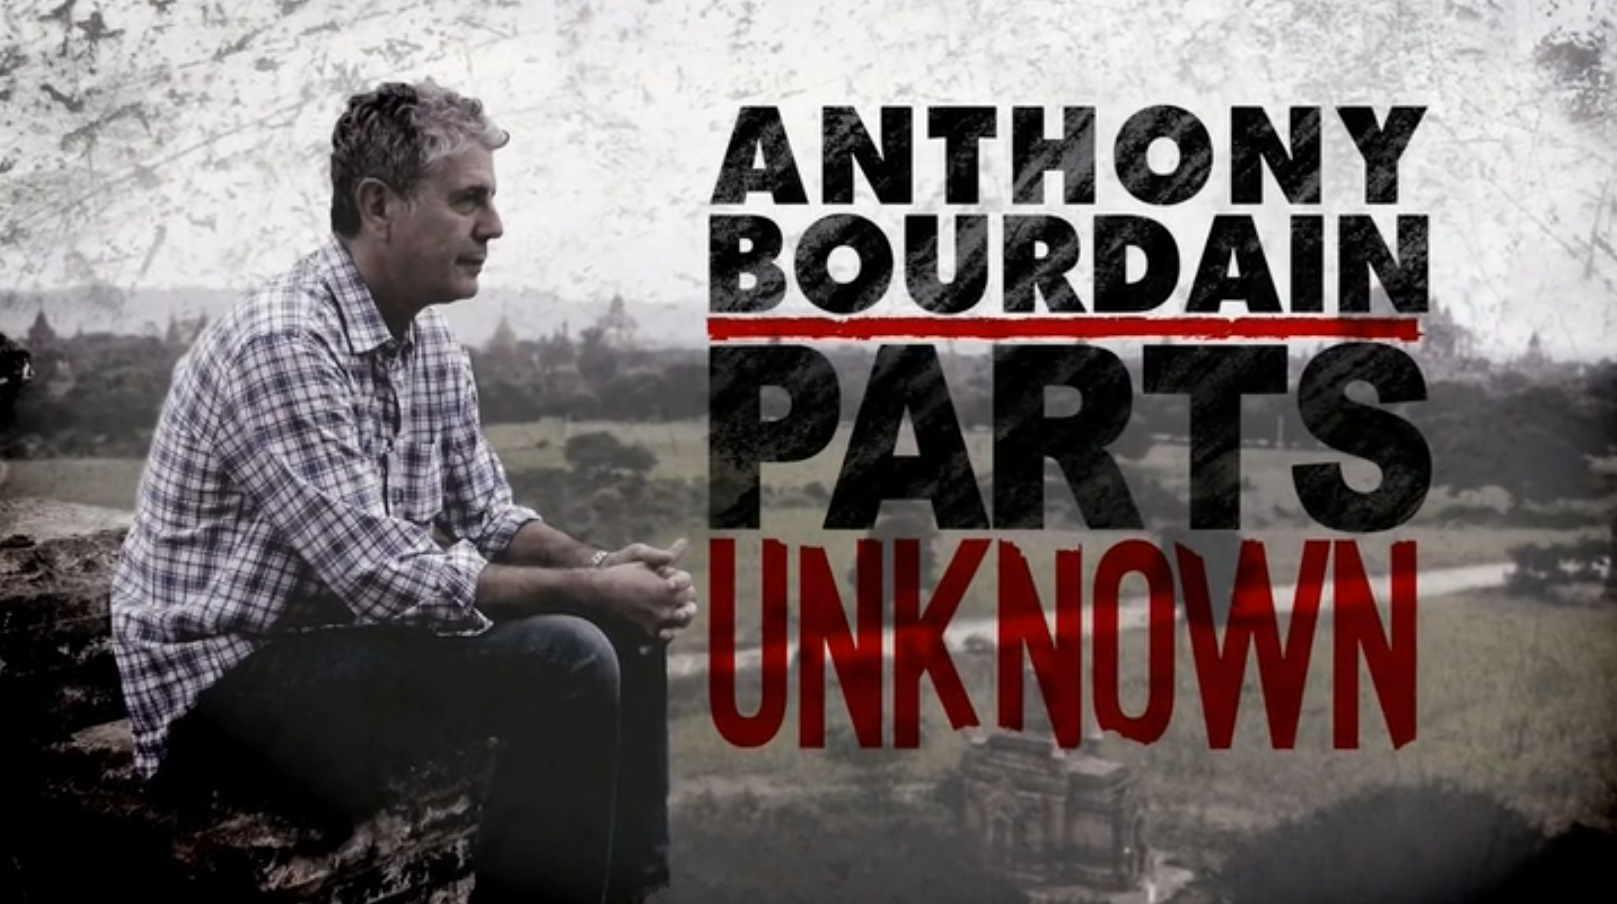 Parts Unknown Tour - Follow in the foot steps of Anthony Bourdain in Yangon. Eat the same food at the same places and explore the culture that fascinated himMore info →